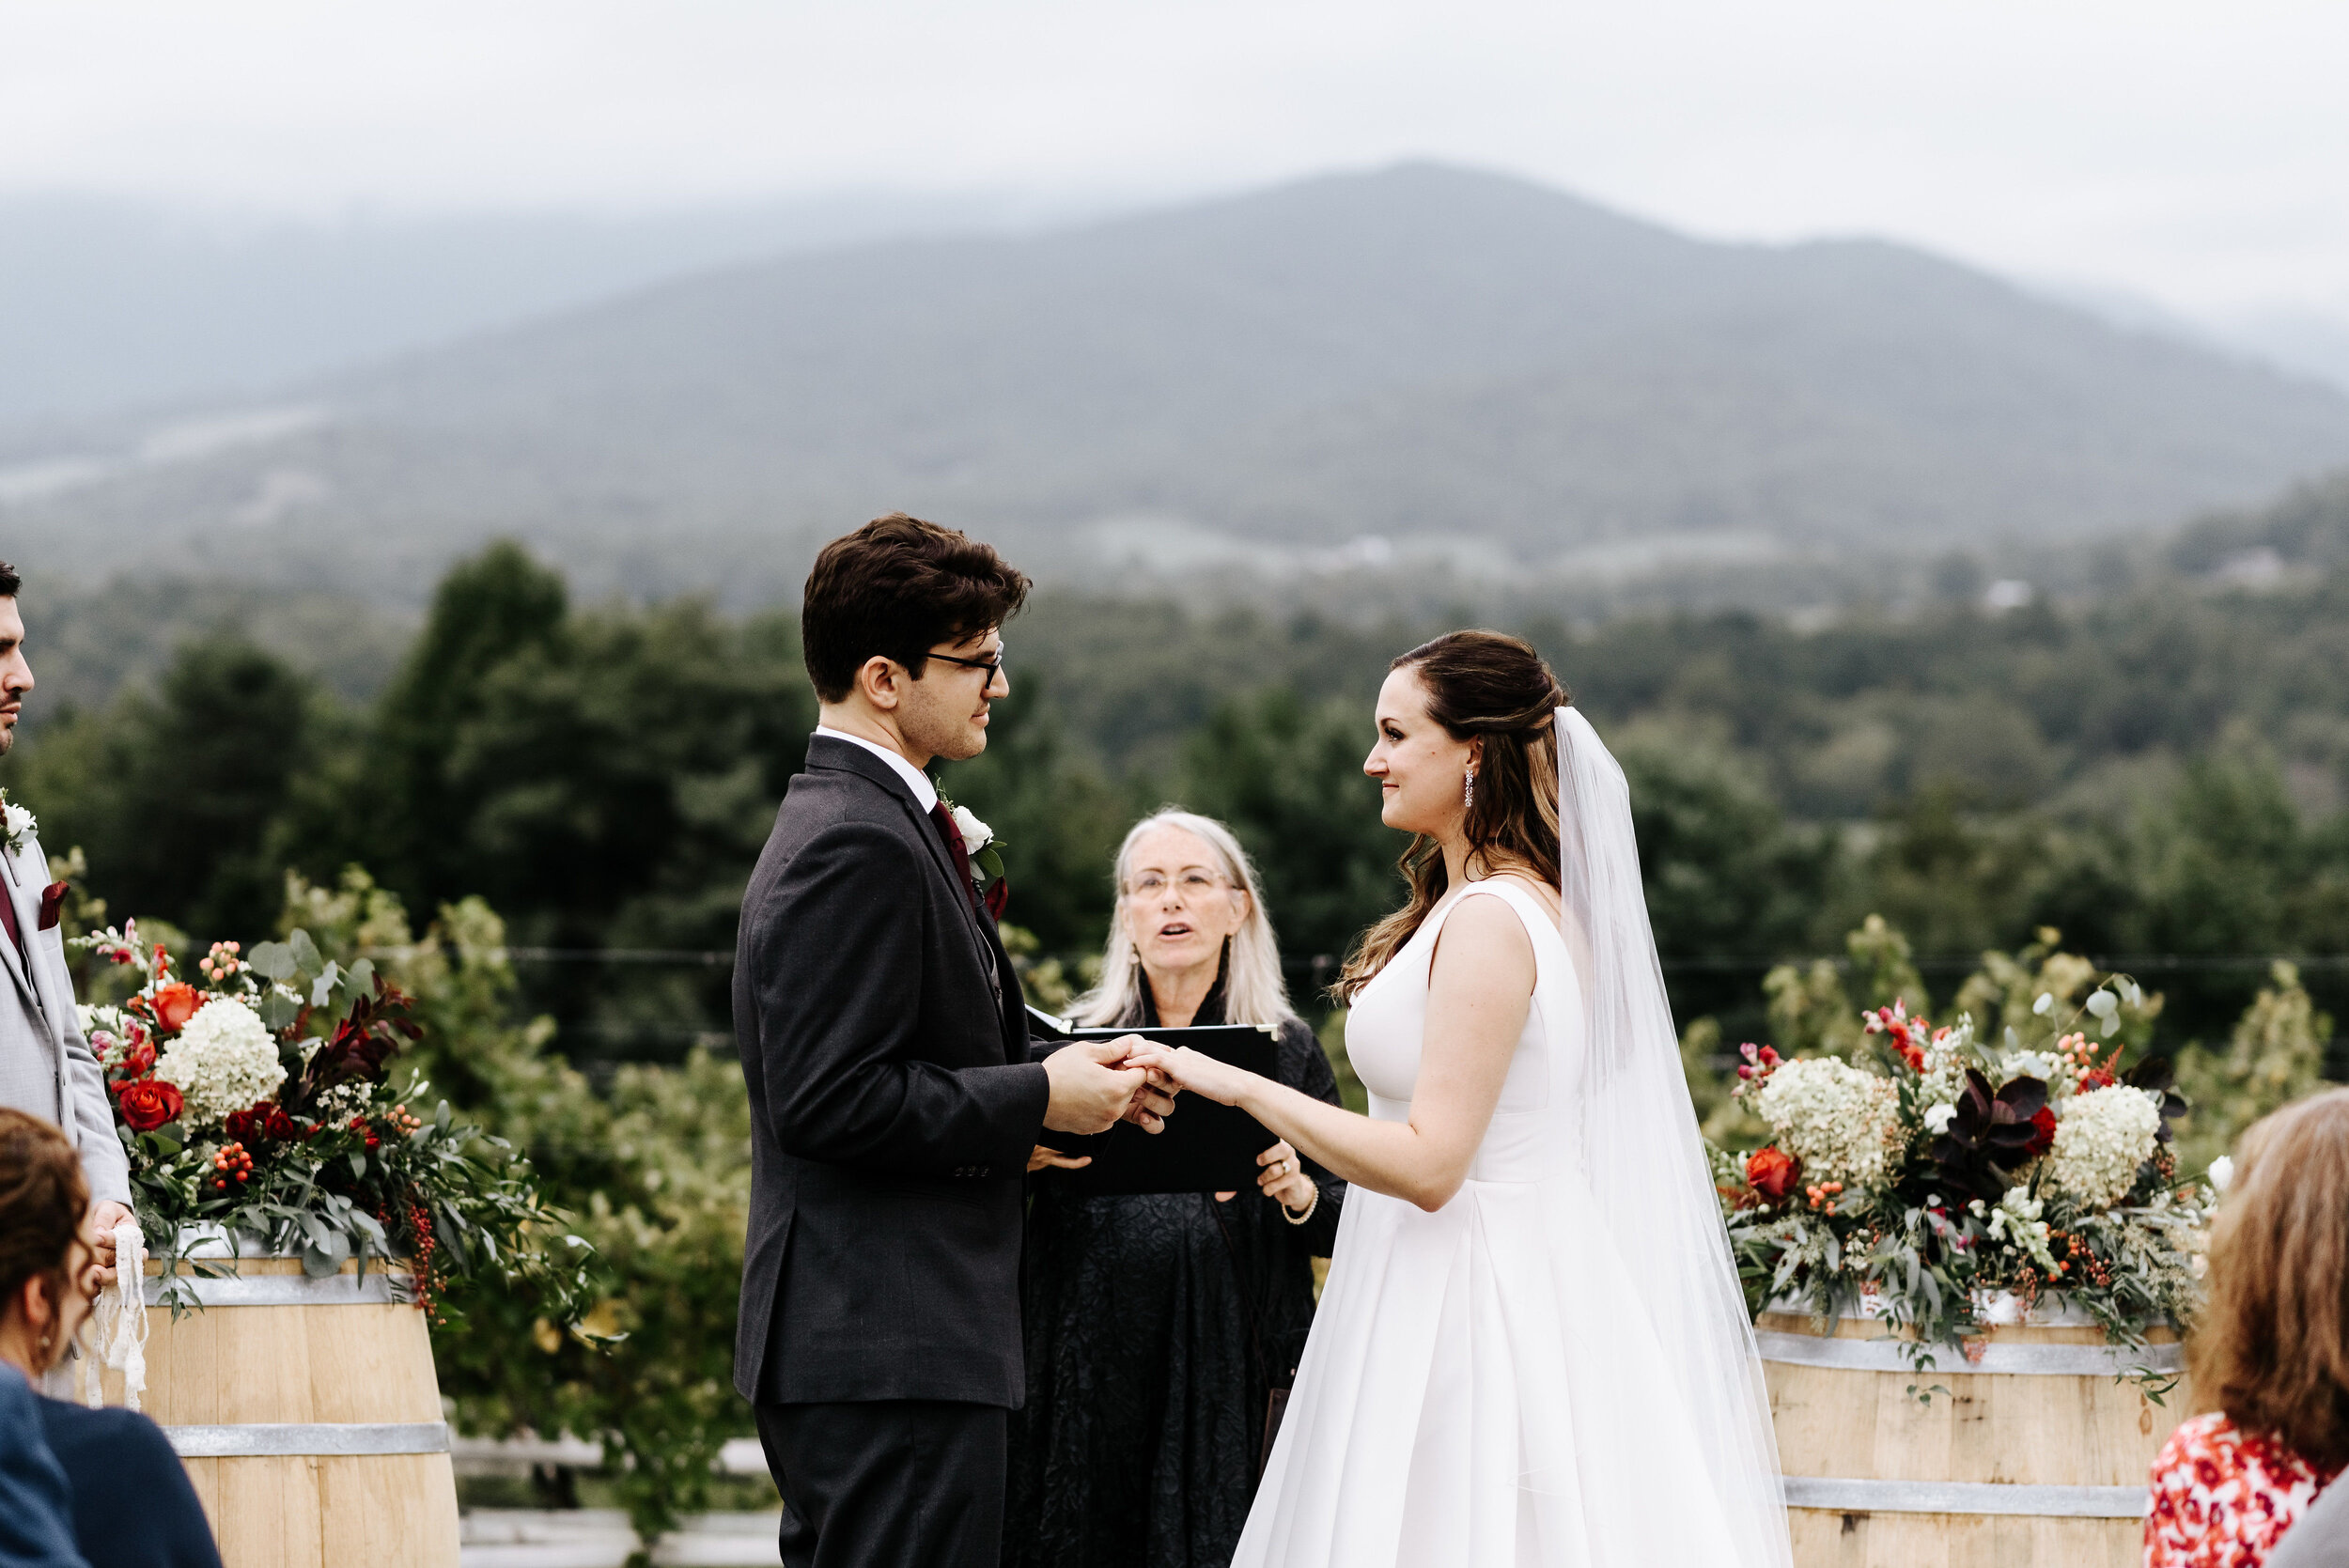 Allison_Nolan_Moss_Vineyards_Wedding_Charlottesville_Virginia_Photography_by_V_49.jpg